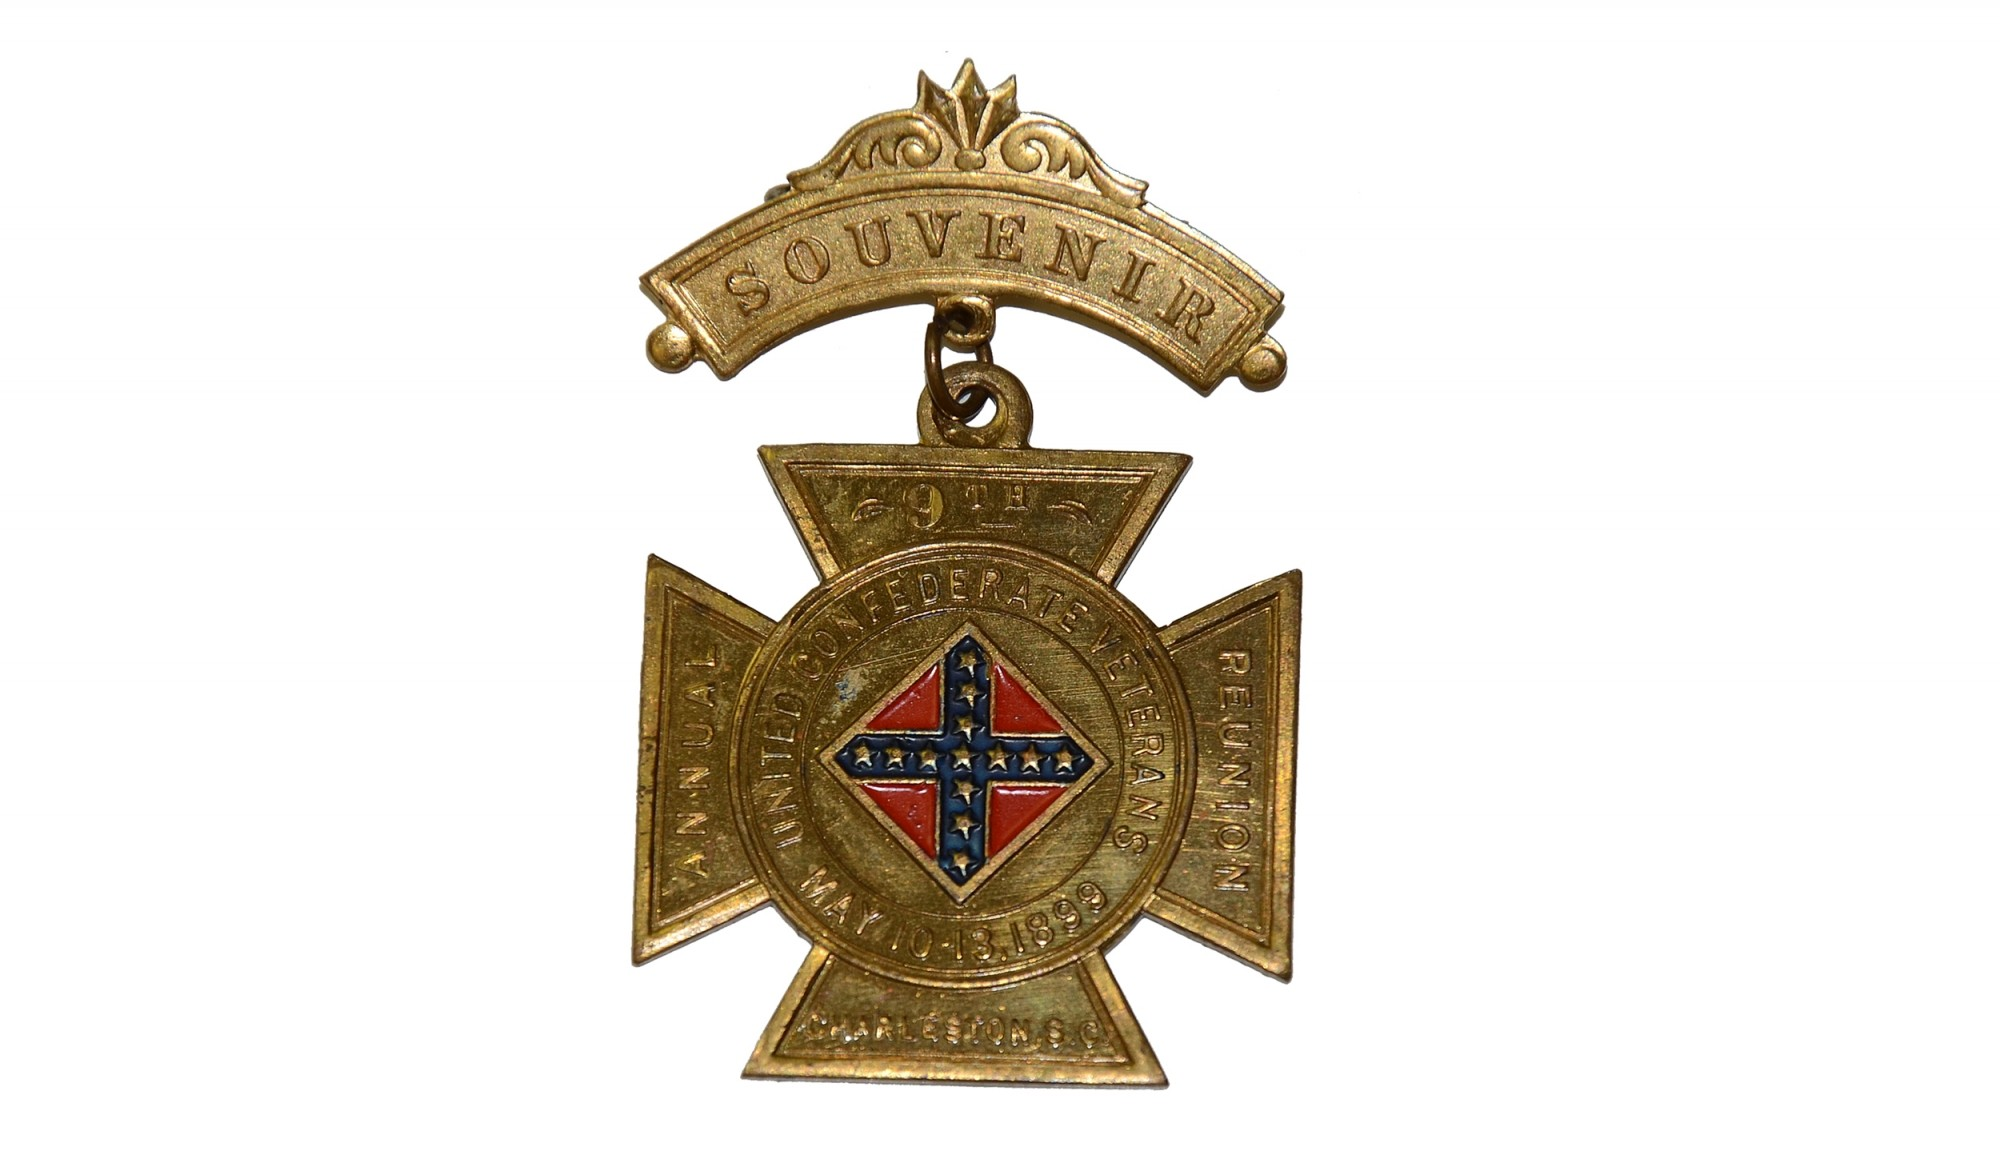 UNITED CONFEDERATE VETERANS BADGE FOR 9TH ANNUAL REUNION